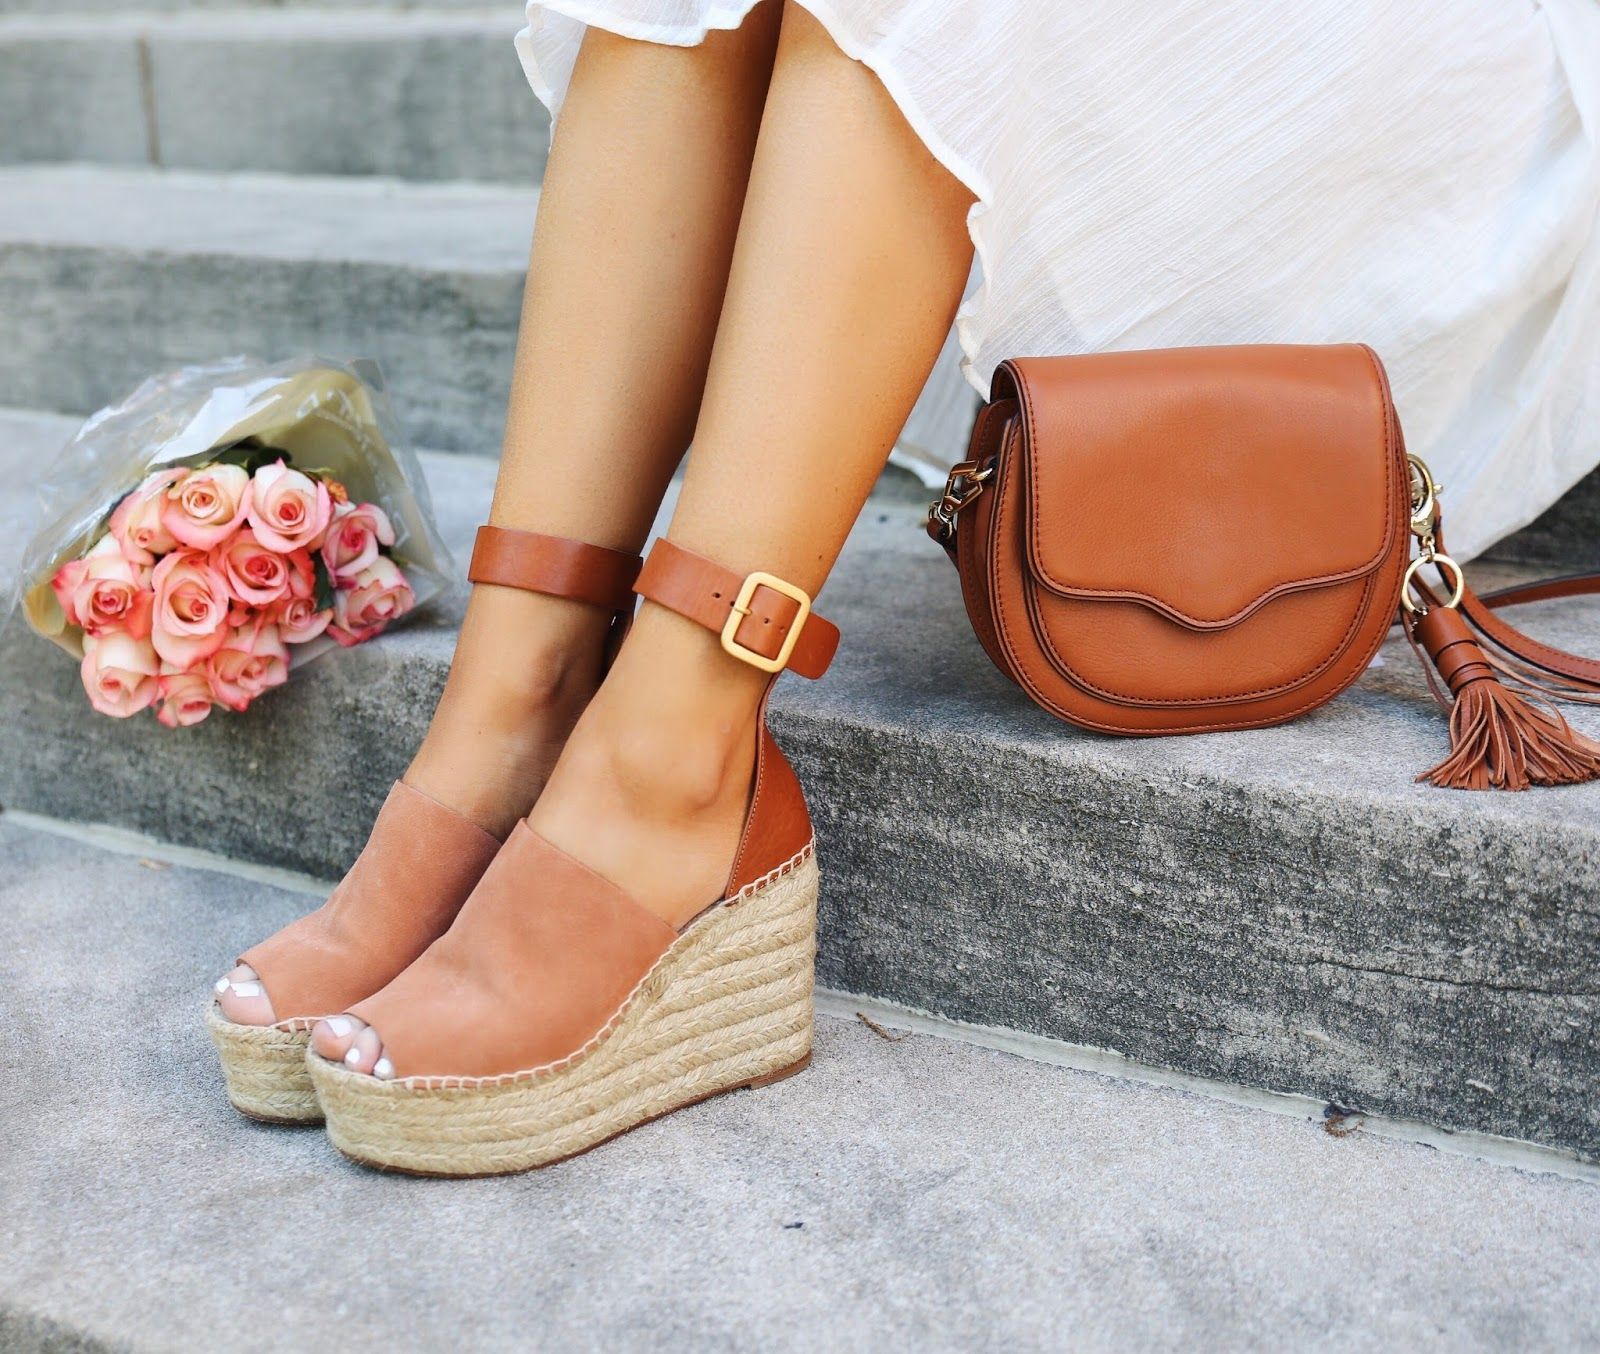 442f98df48d Huge Instagram Roundup | the closet | Shoes, Wedge shoes, Fashion shoes